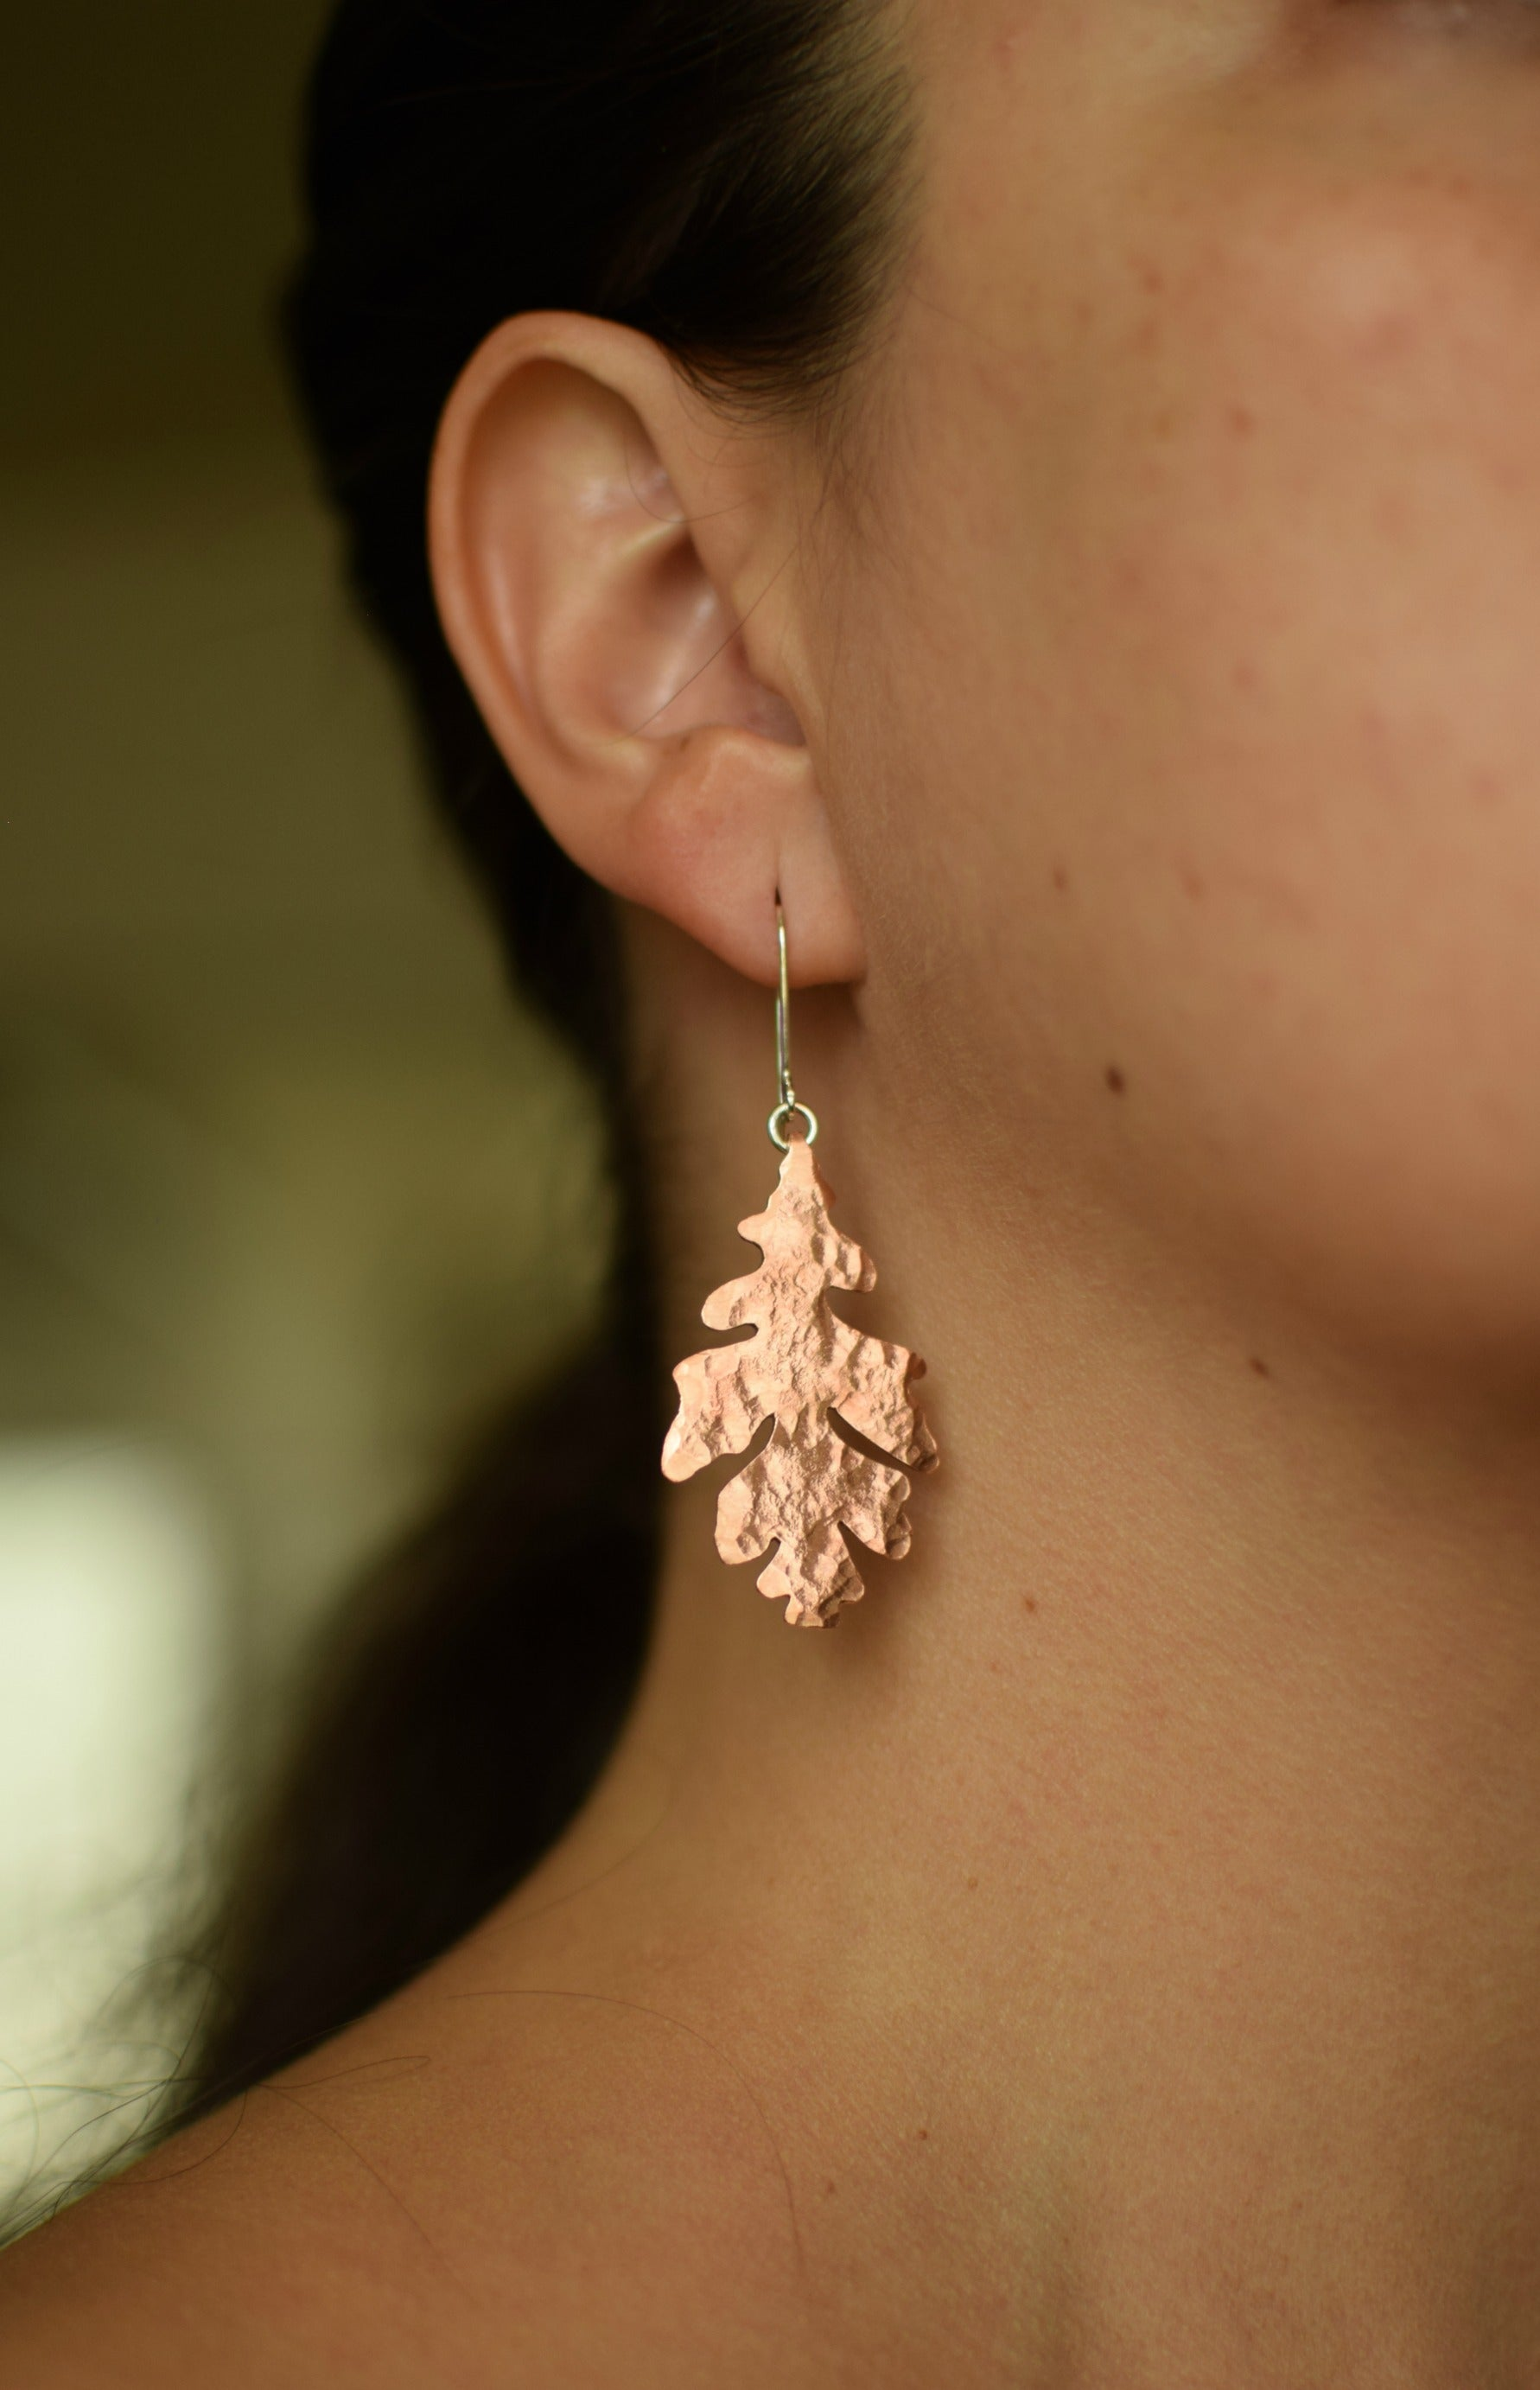 XWhite Oak Dangle Earrings - Copper Leaf Earrings - Autumn Fashion